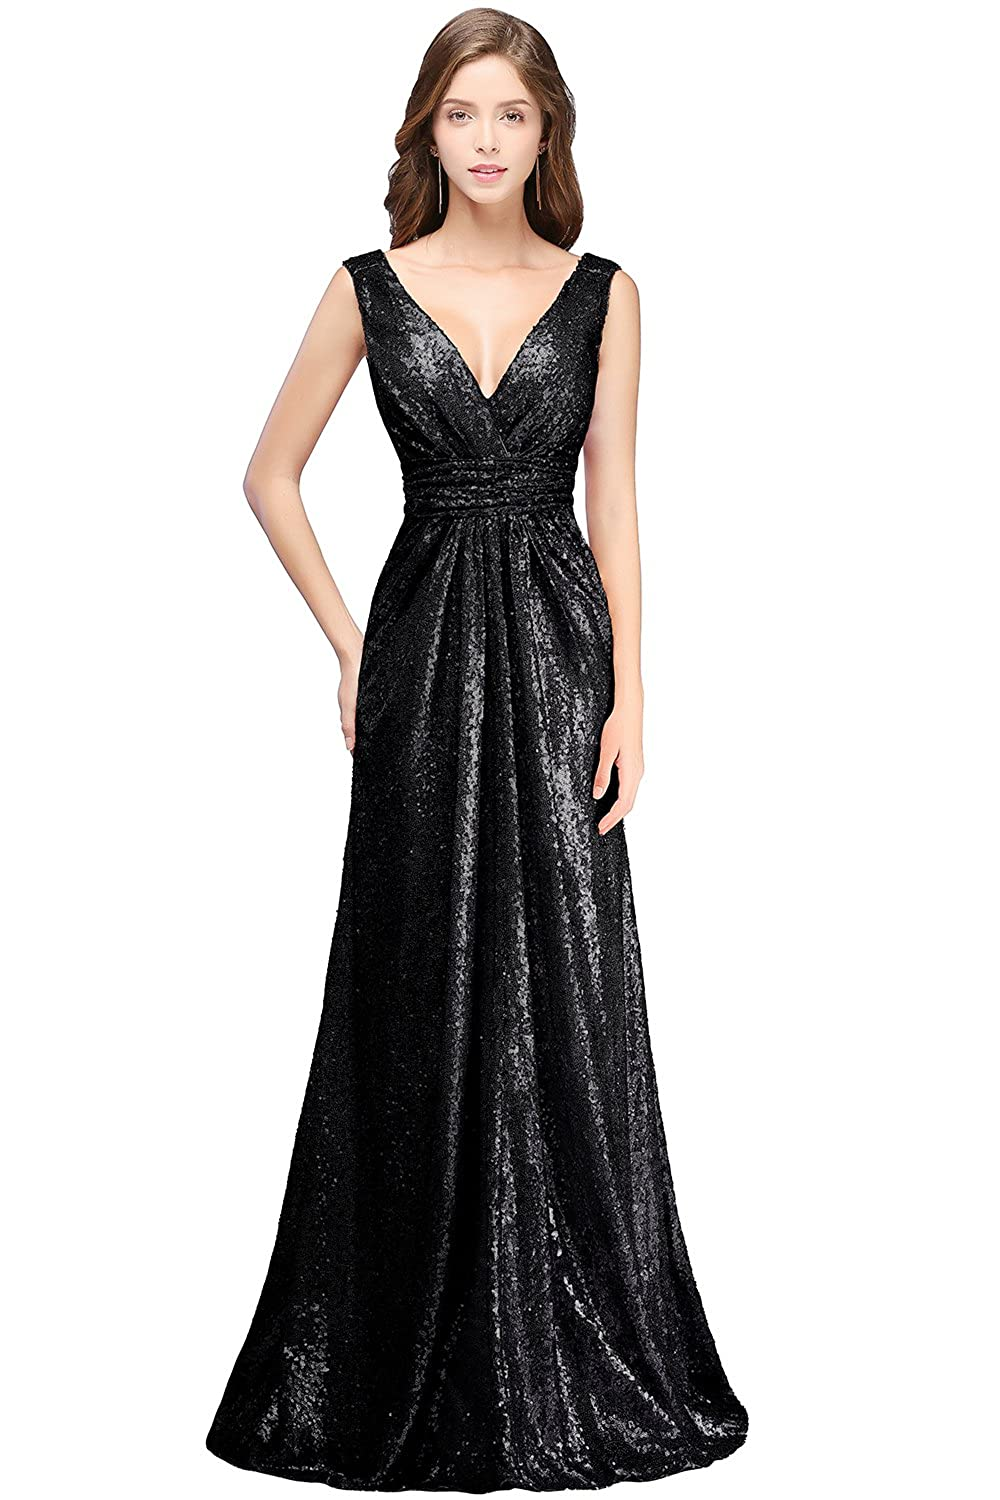 MisShow Womens V Neck Sequined Bridesmaid Dresses Long Evening Gowns